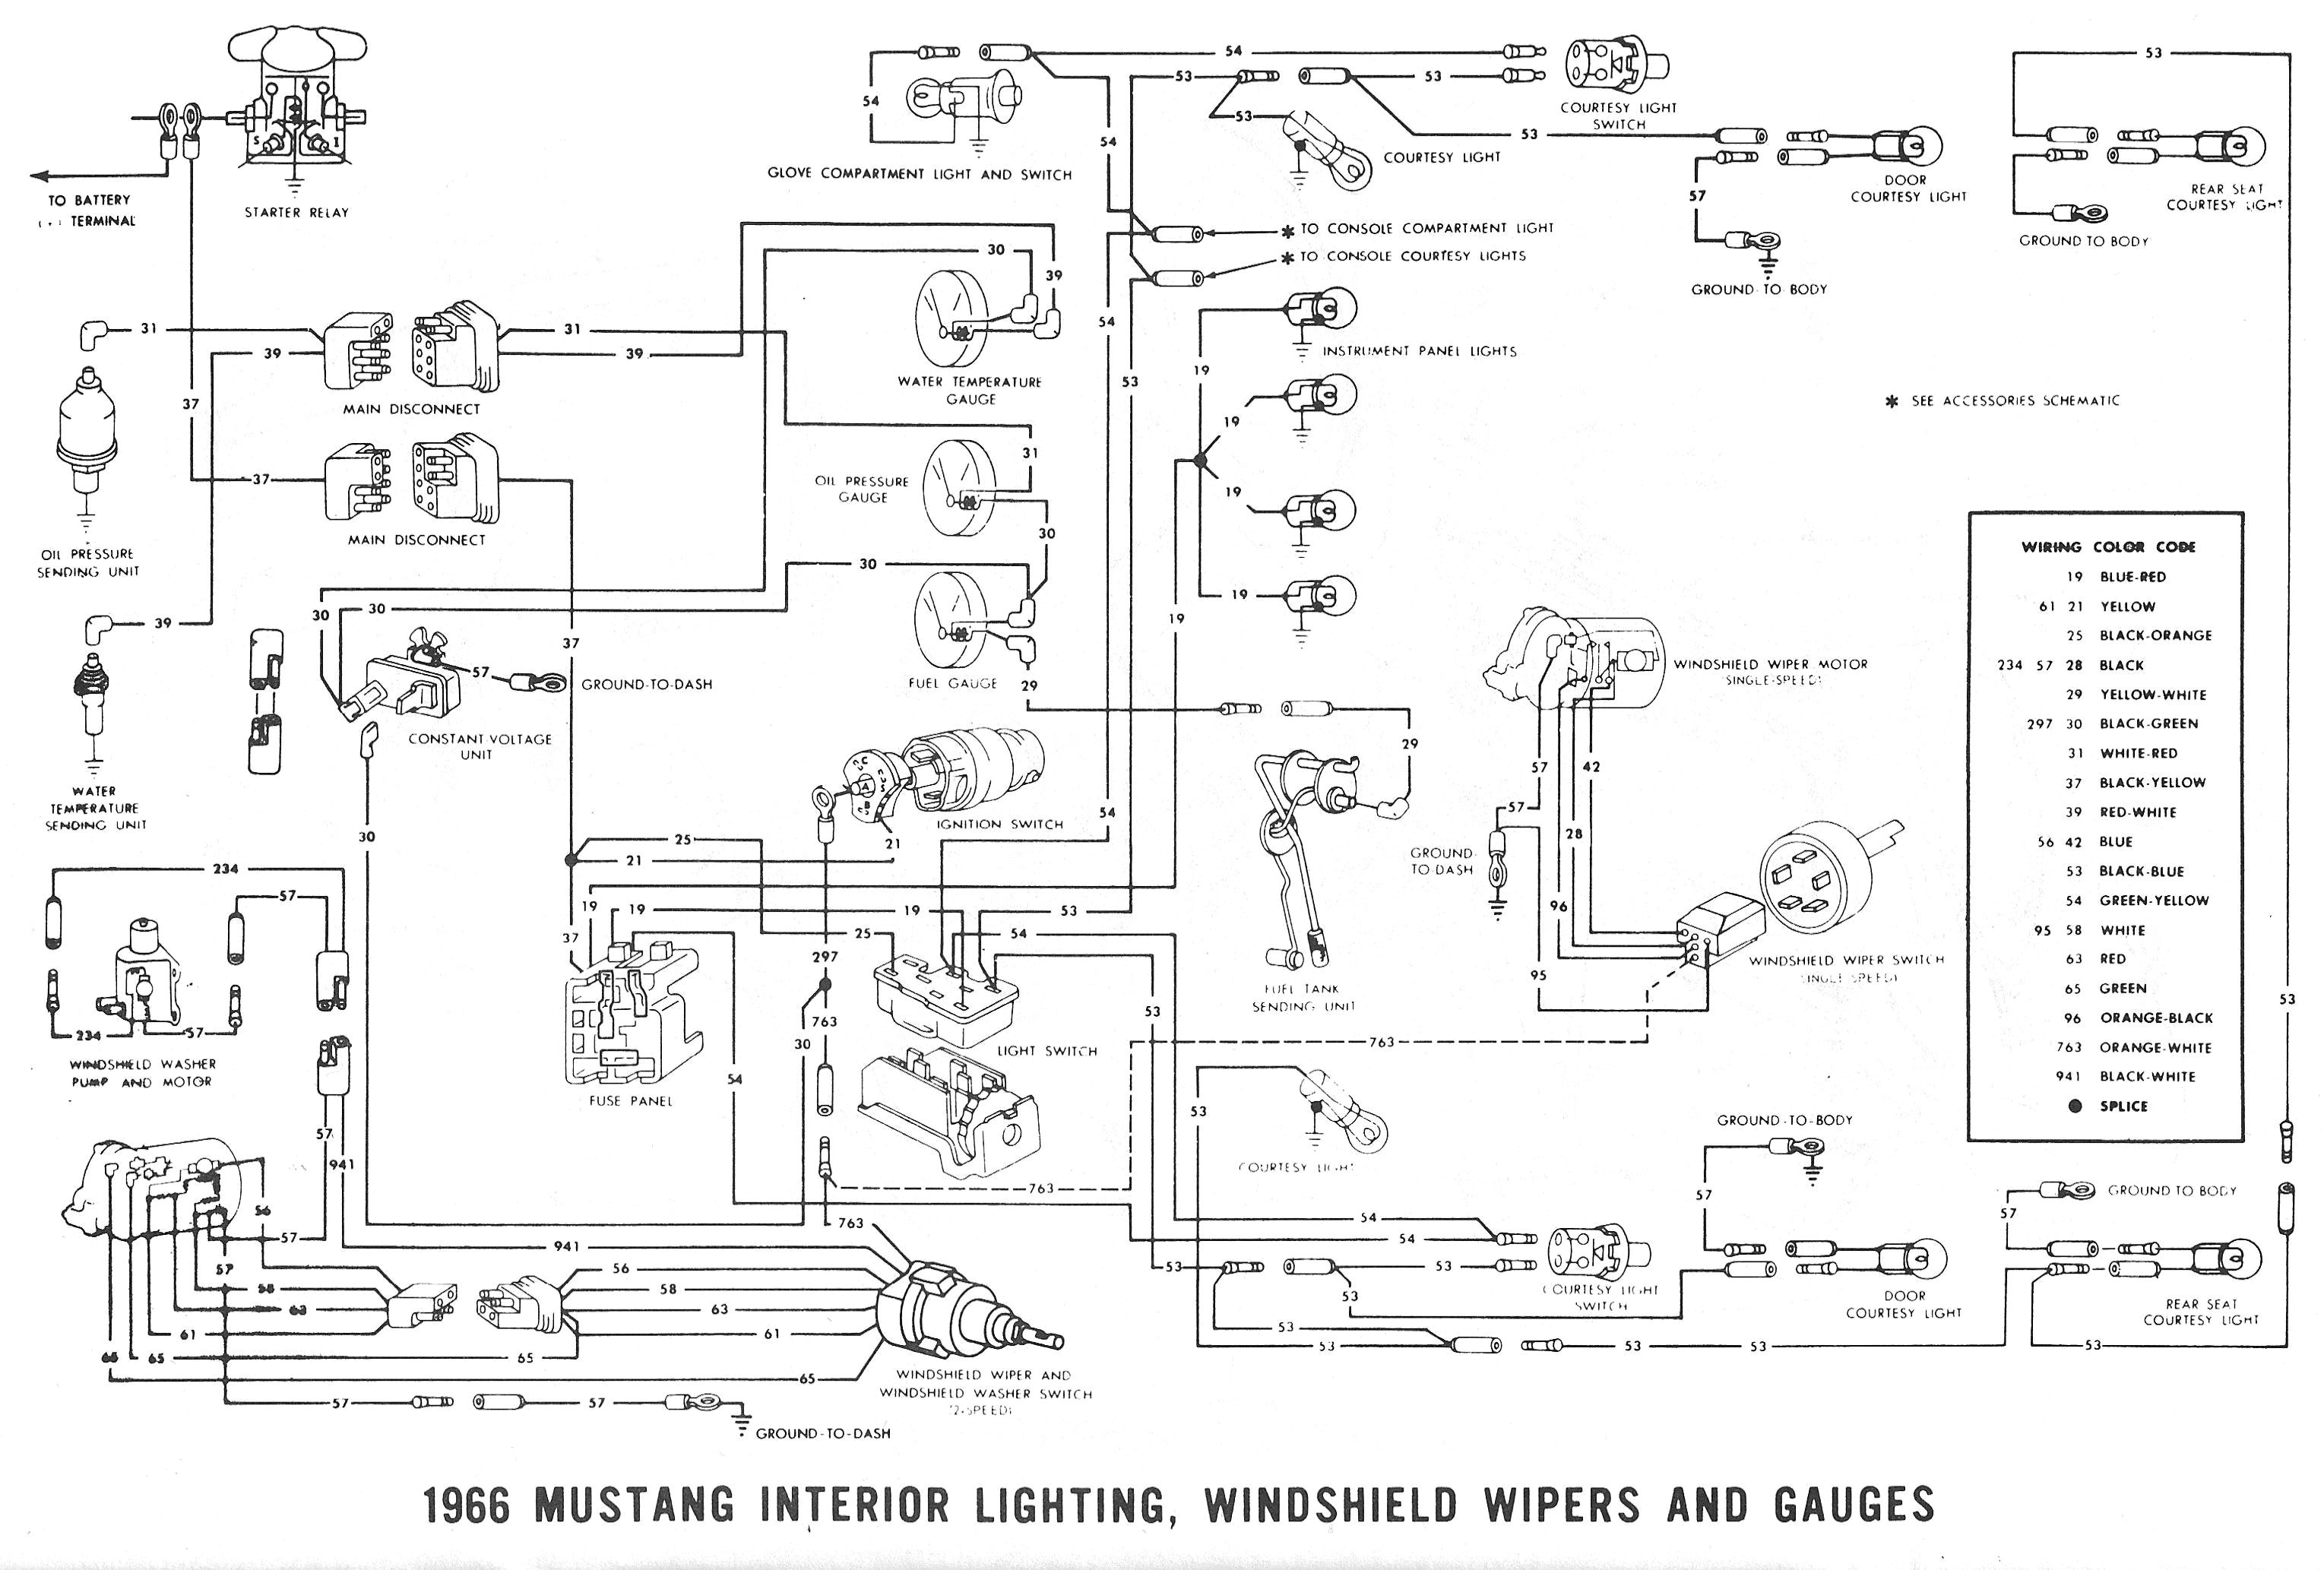 [SCHEMATICS_4FR]  69C2 1966 Mustang Ignition Wiring Diagram | Wiring Resources | 2015 Mustang Wiring Diagram |  | Wiring Resources